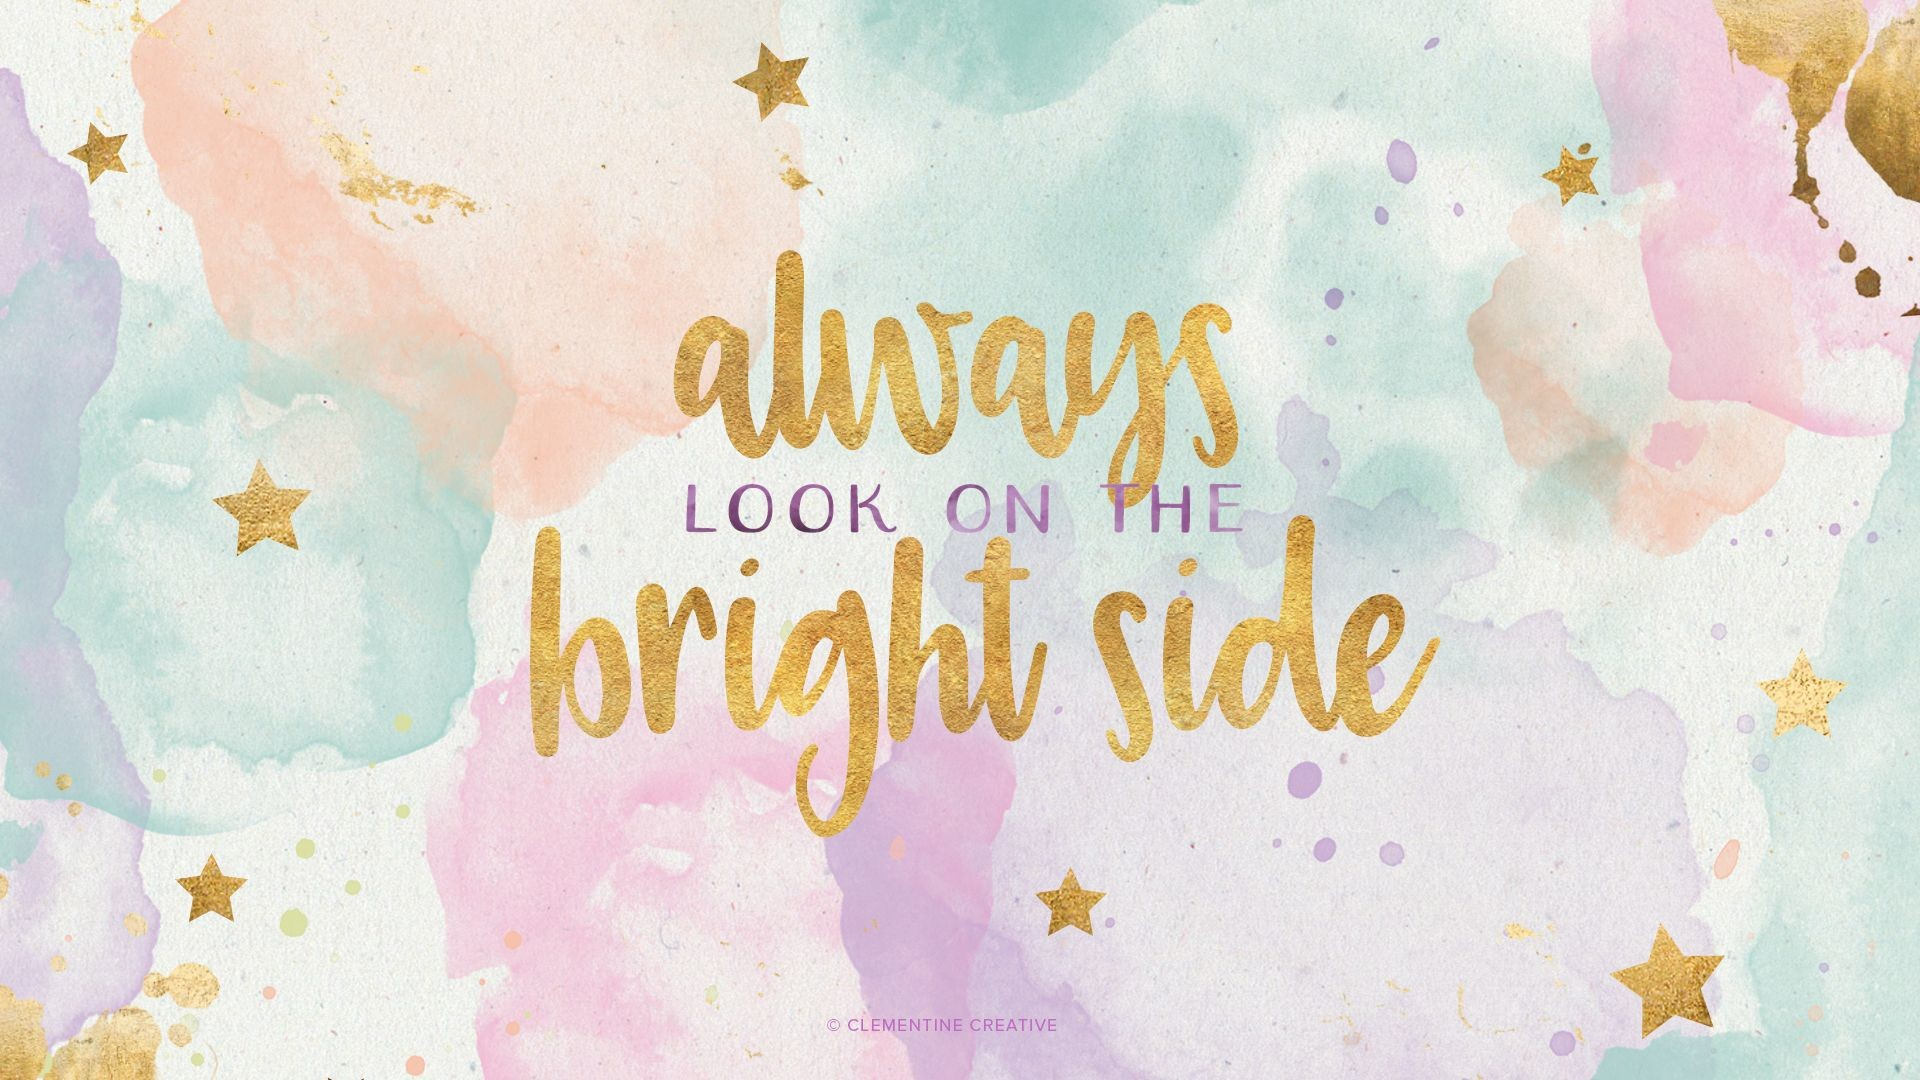 Res: 1920x1080, Pinterest Cute Desktop Wallpaper | Free Wallpaper: Always Look on the  Bright Side